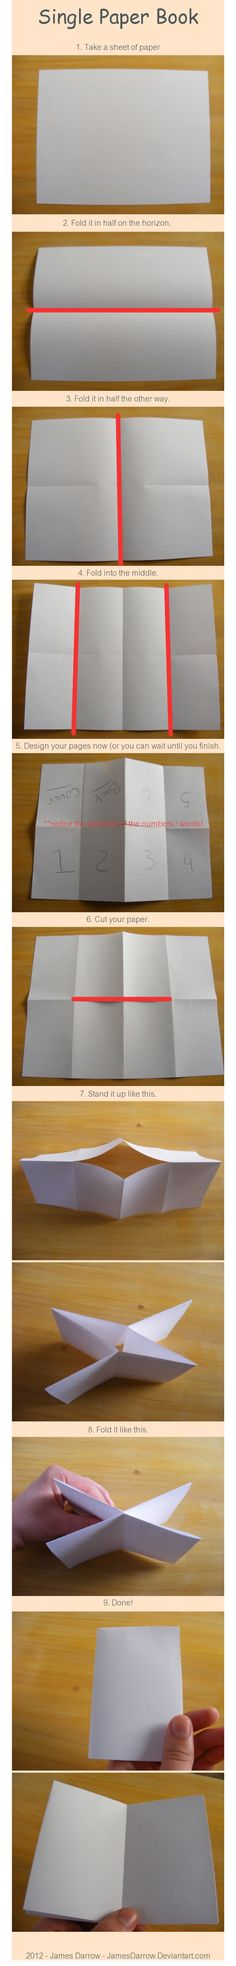 How to turn a single sheet of paper into a mini book! good for leave behind and only needs single side printing...